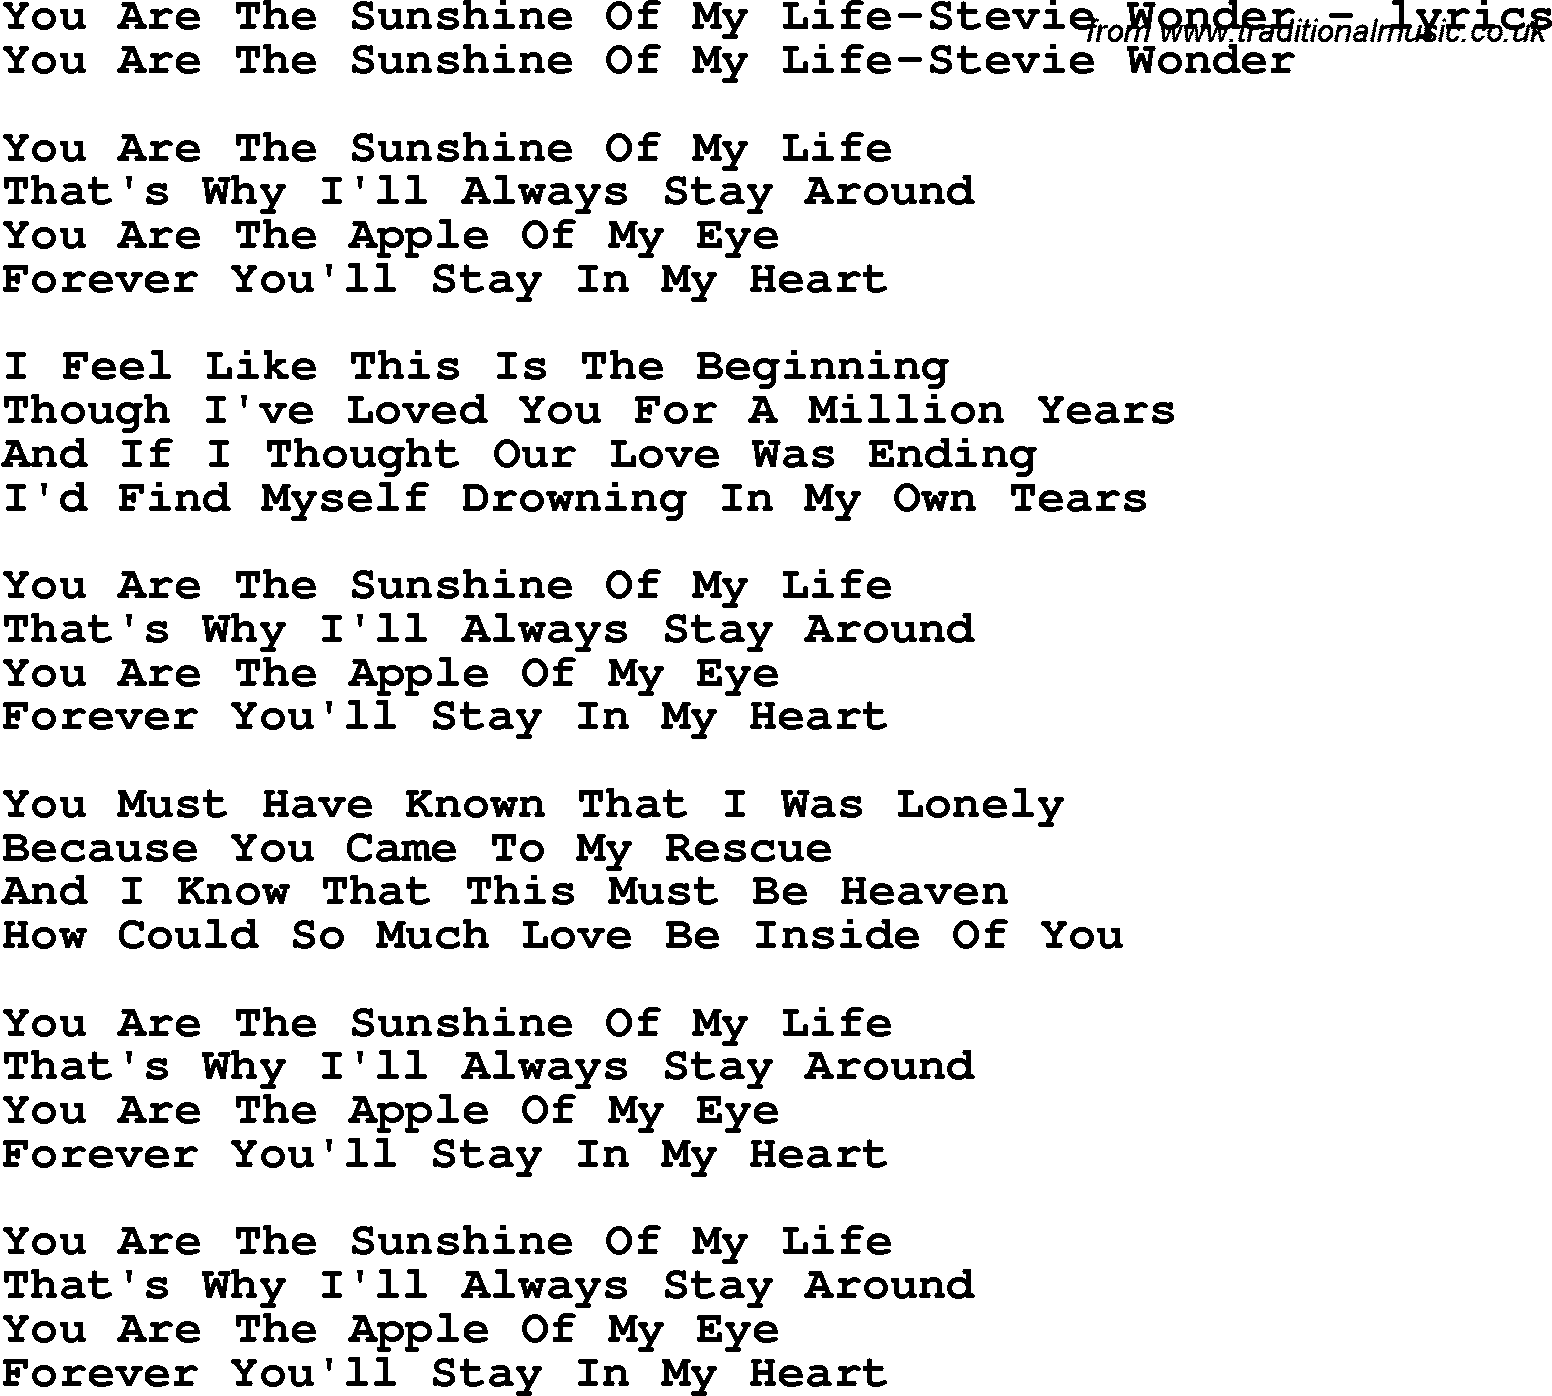 Love Song Lyrics For You Are The Sunshine Of My Life Stevie Wonder